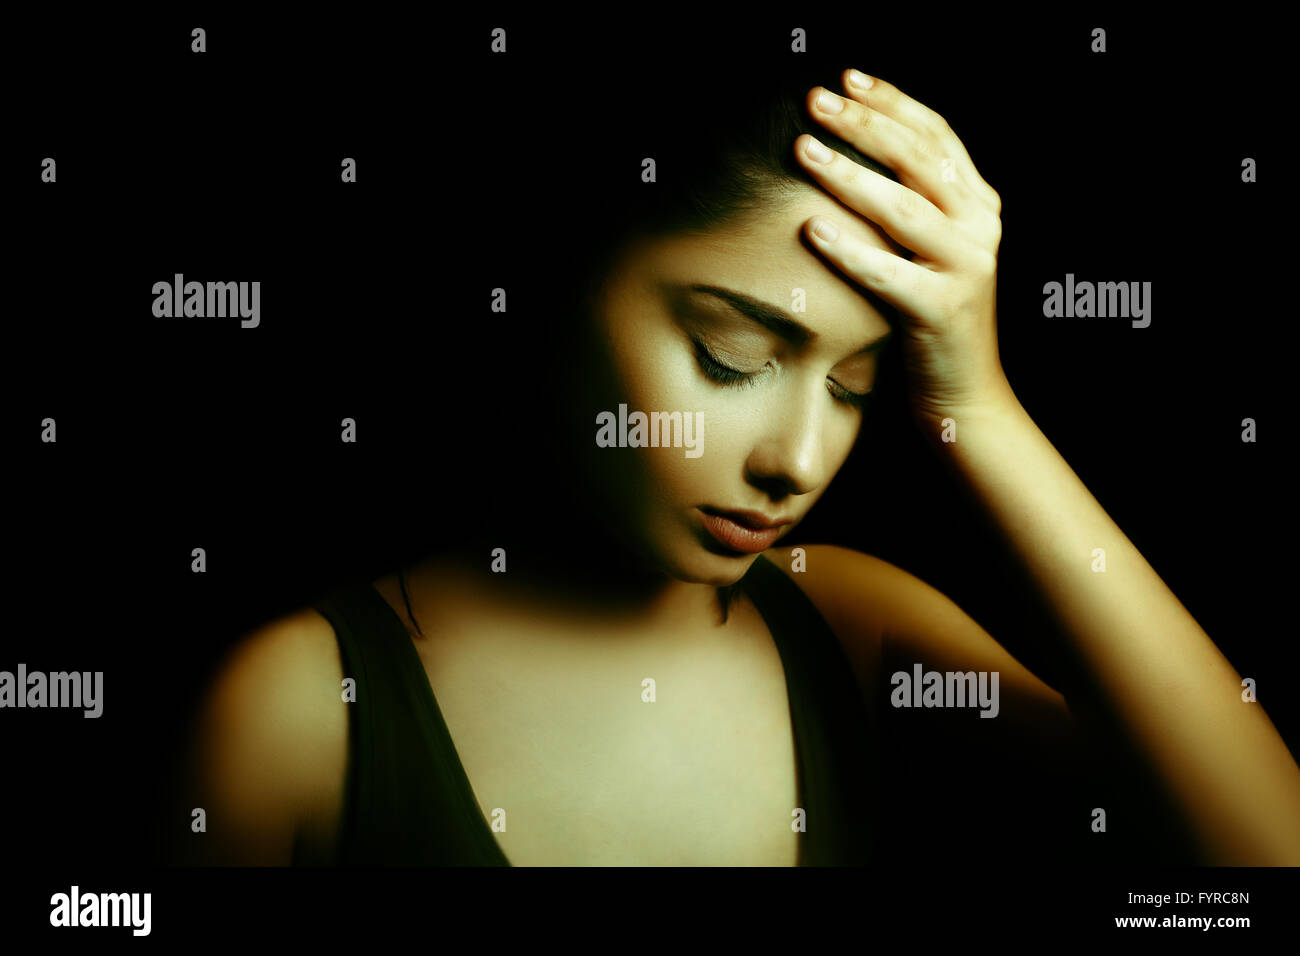 Depression Concept. Sad Young Woman with Face in the Dark - Stock Image